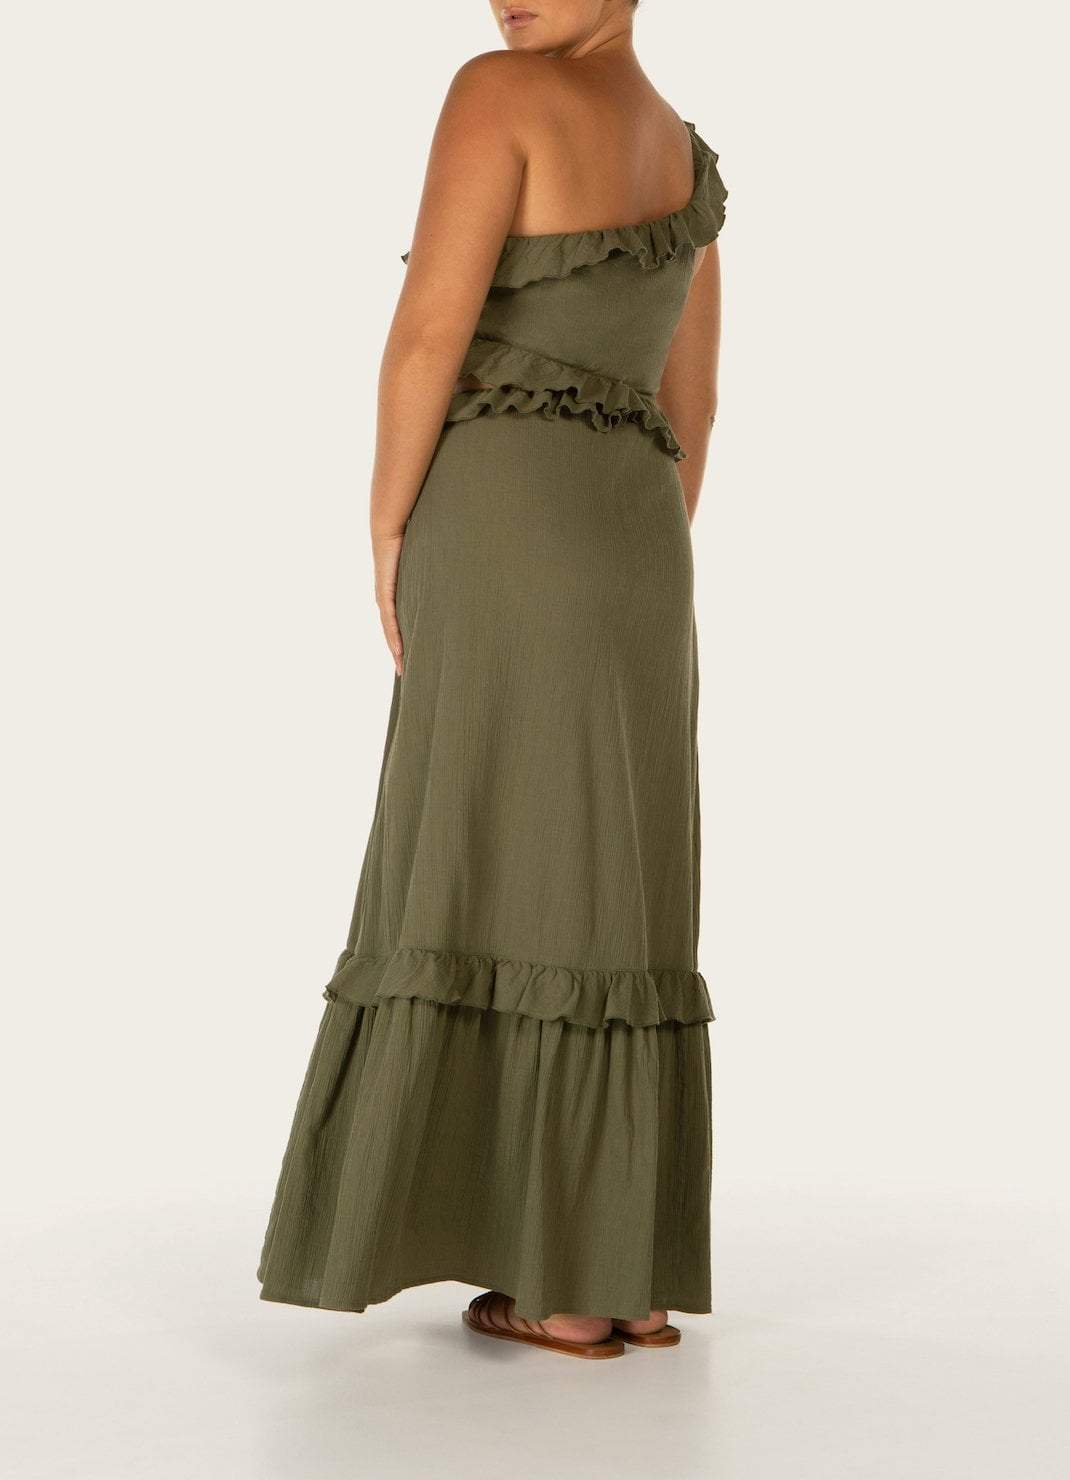 Pear One Shoulder Tiered Dress